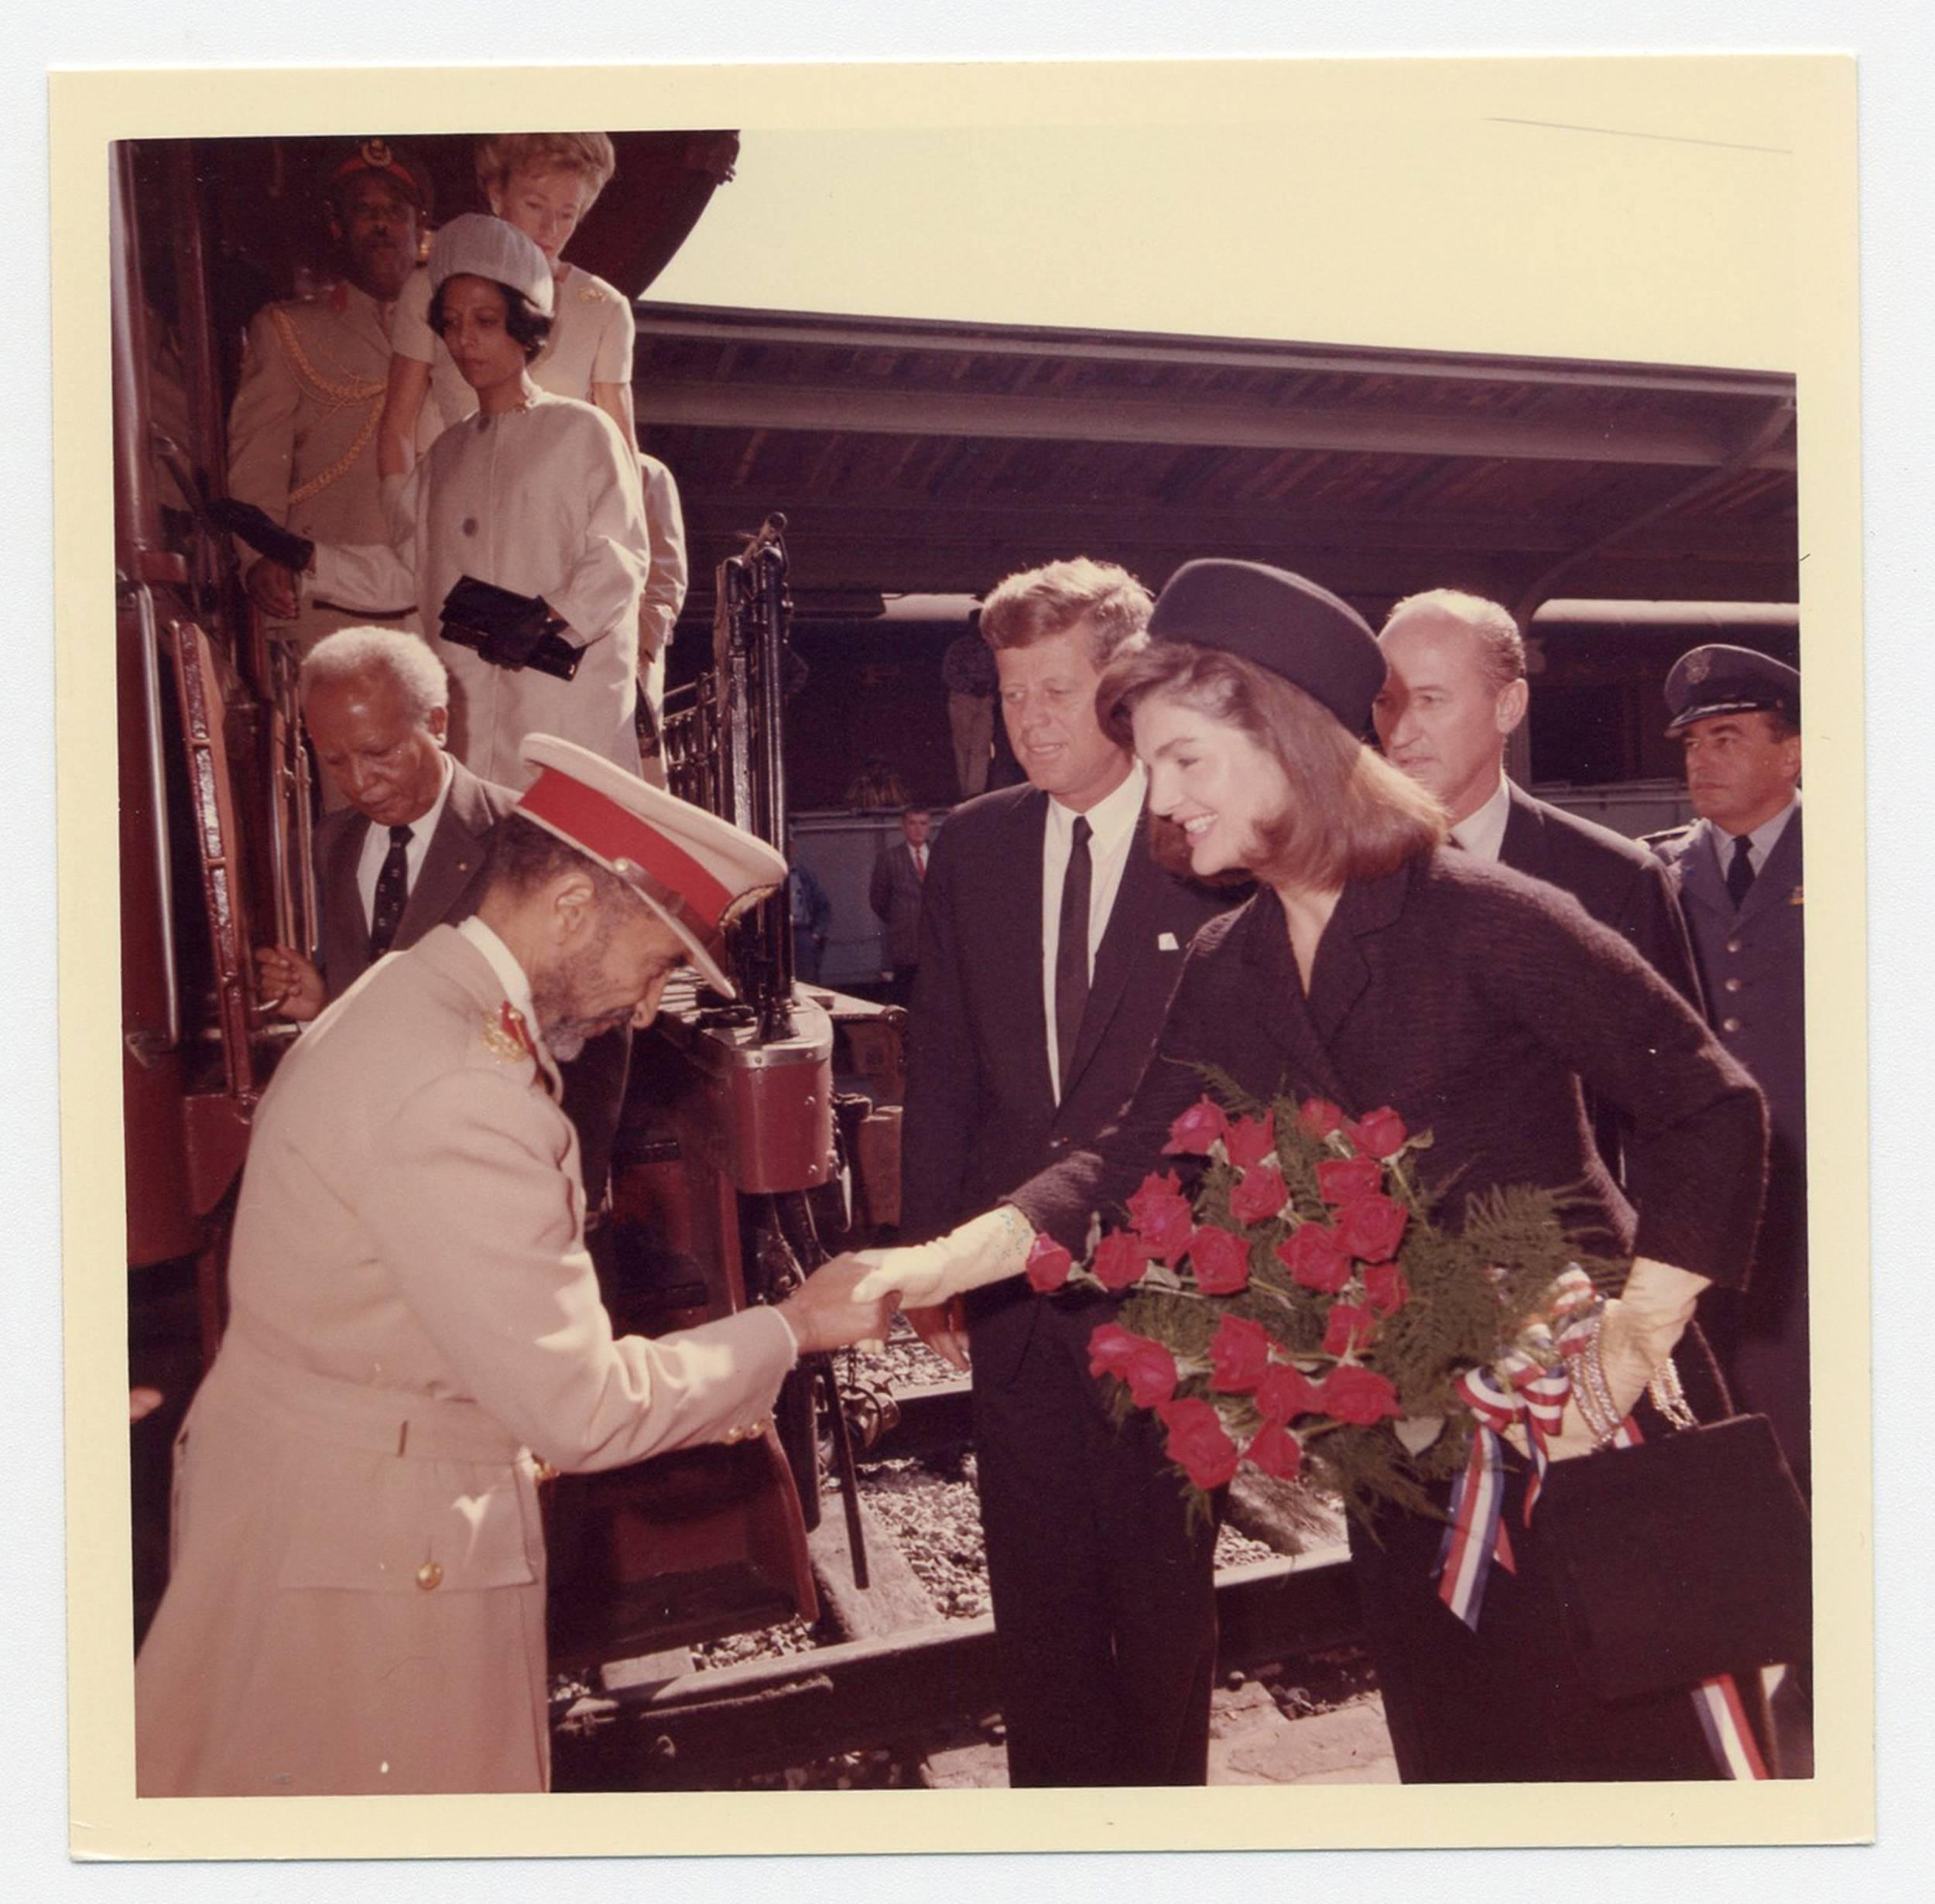 John F. Kennedy & Jackie Kennedy Greet Ethiopian Emperor, Vintage Photo from Cecil Stoughton's Personal Collection